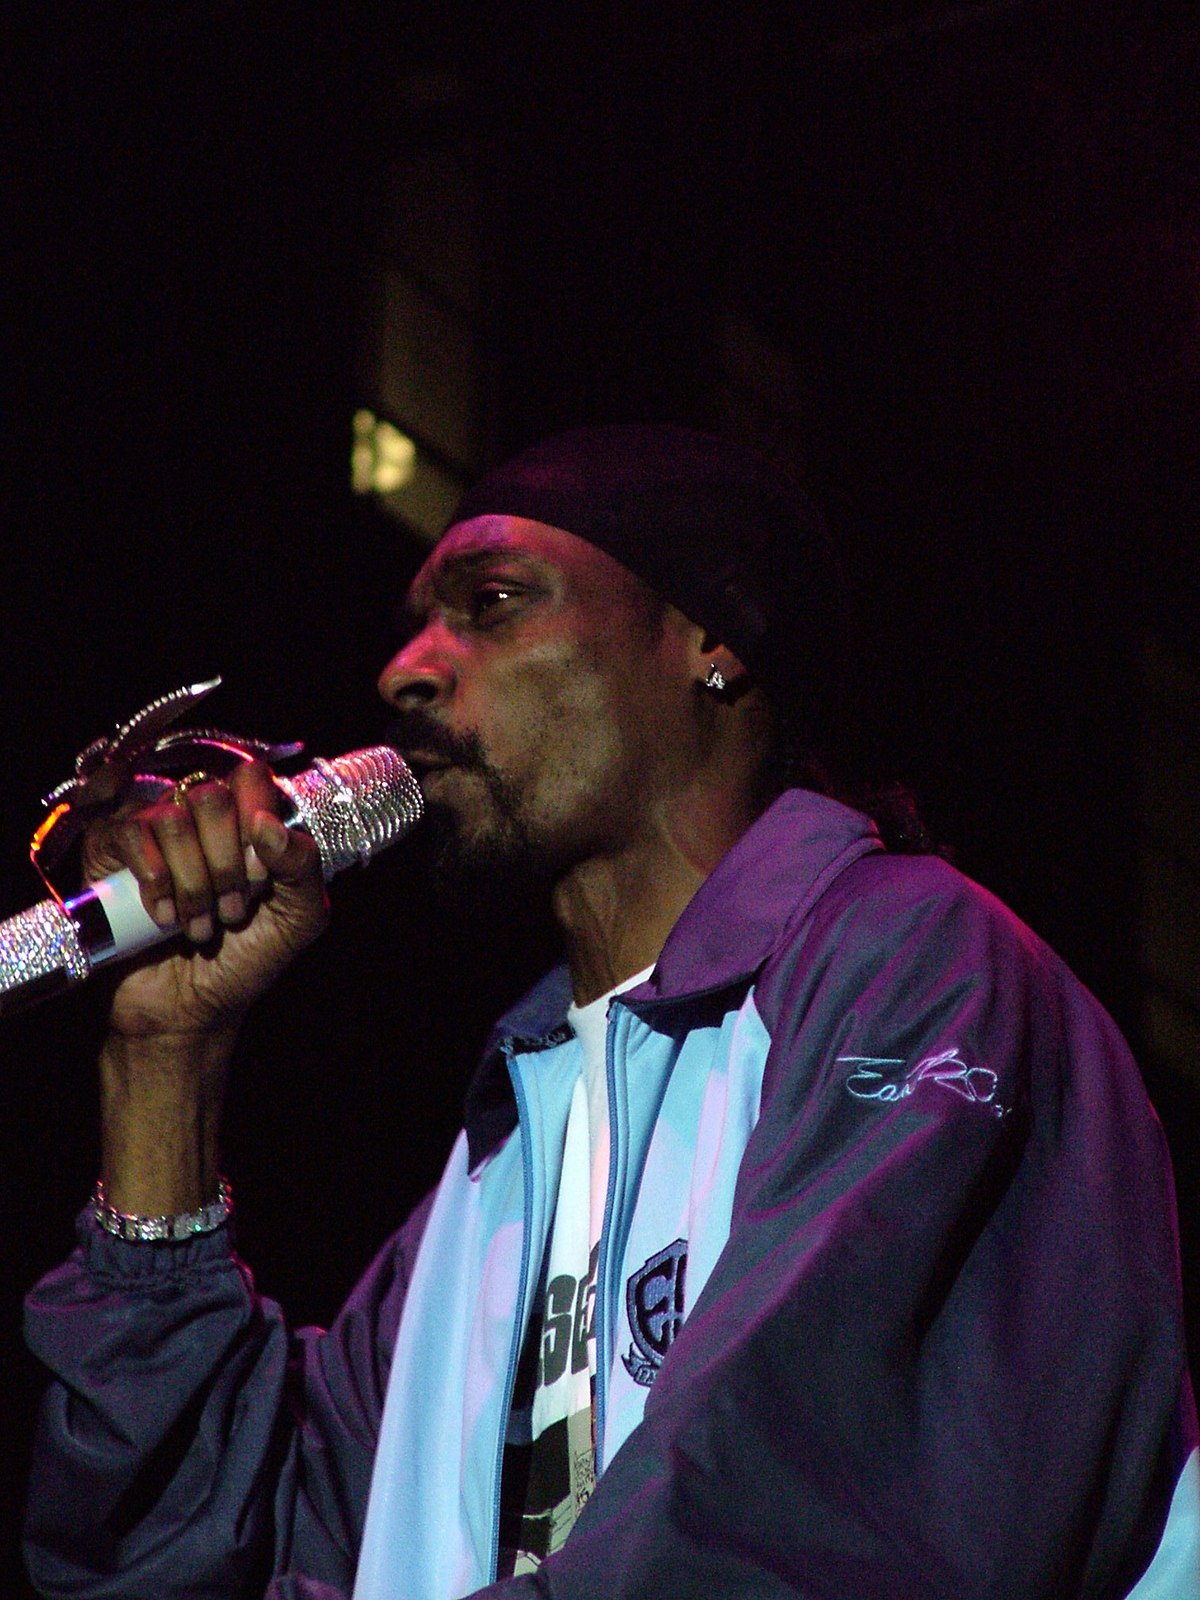 Discografia Di Snoop Dogg Wikipedia